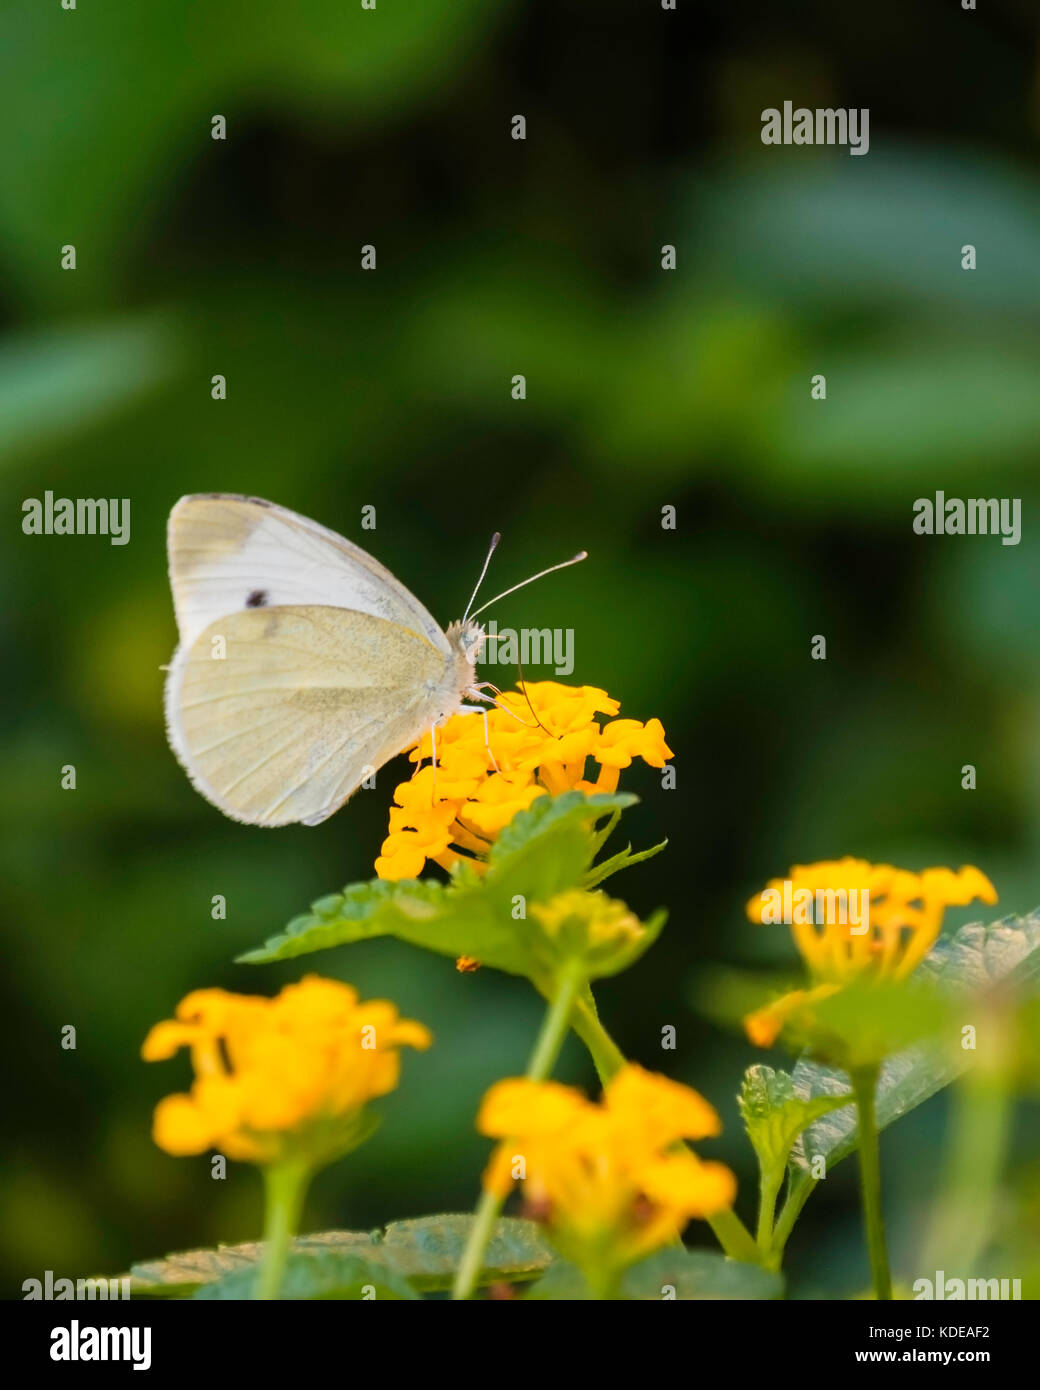 Cabbage White Butterfly, Pierus brassicae, feeding on yellow Lantana camara in a garden in Oklahoma, USA. - Stock Image